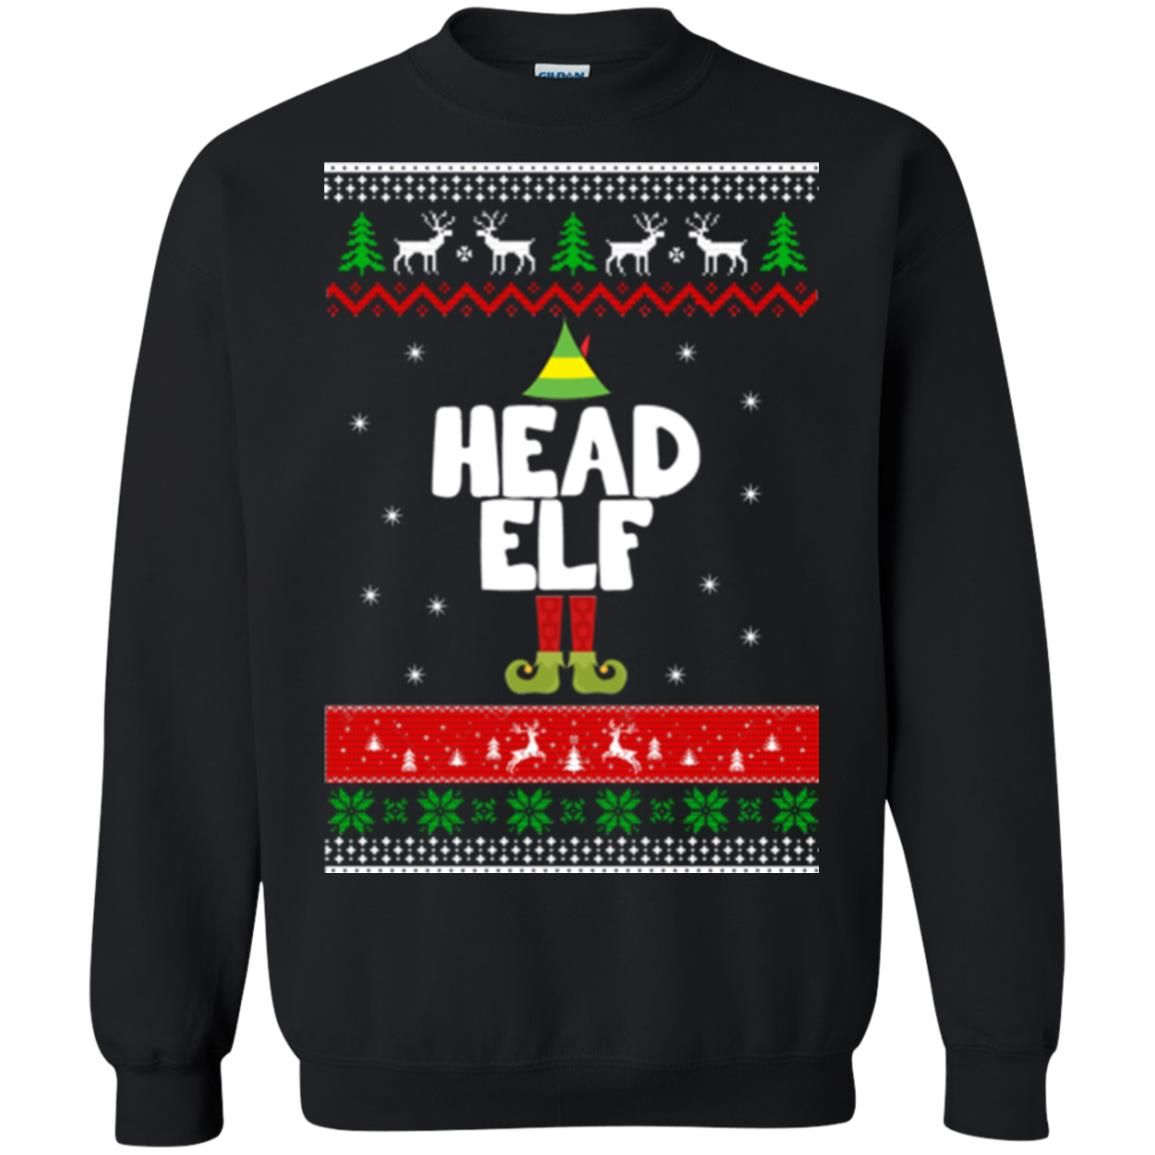 image 1771 - Christmas Vacation: Buddy The Elf sweater, hoodie